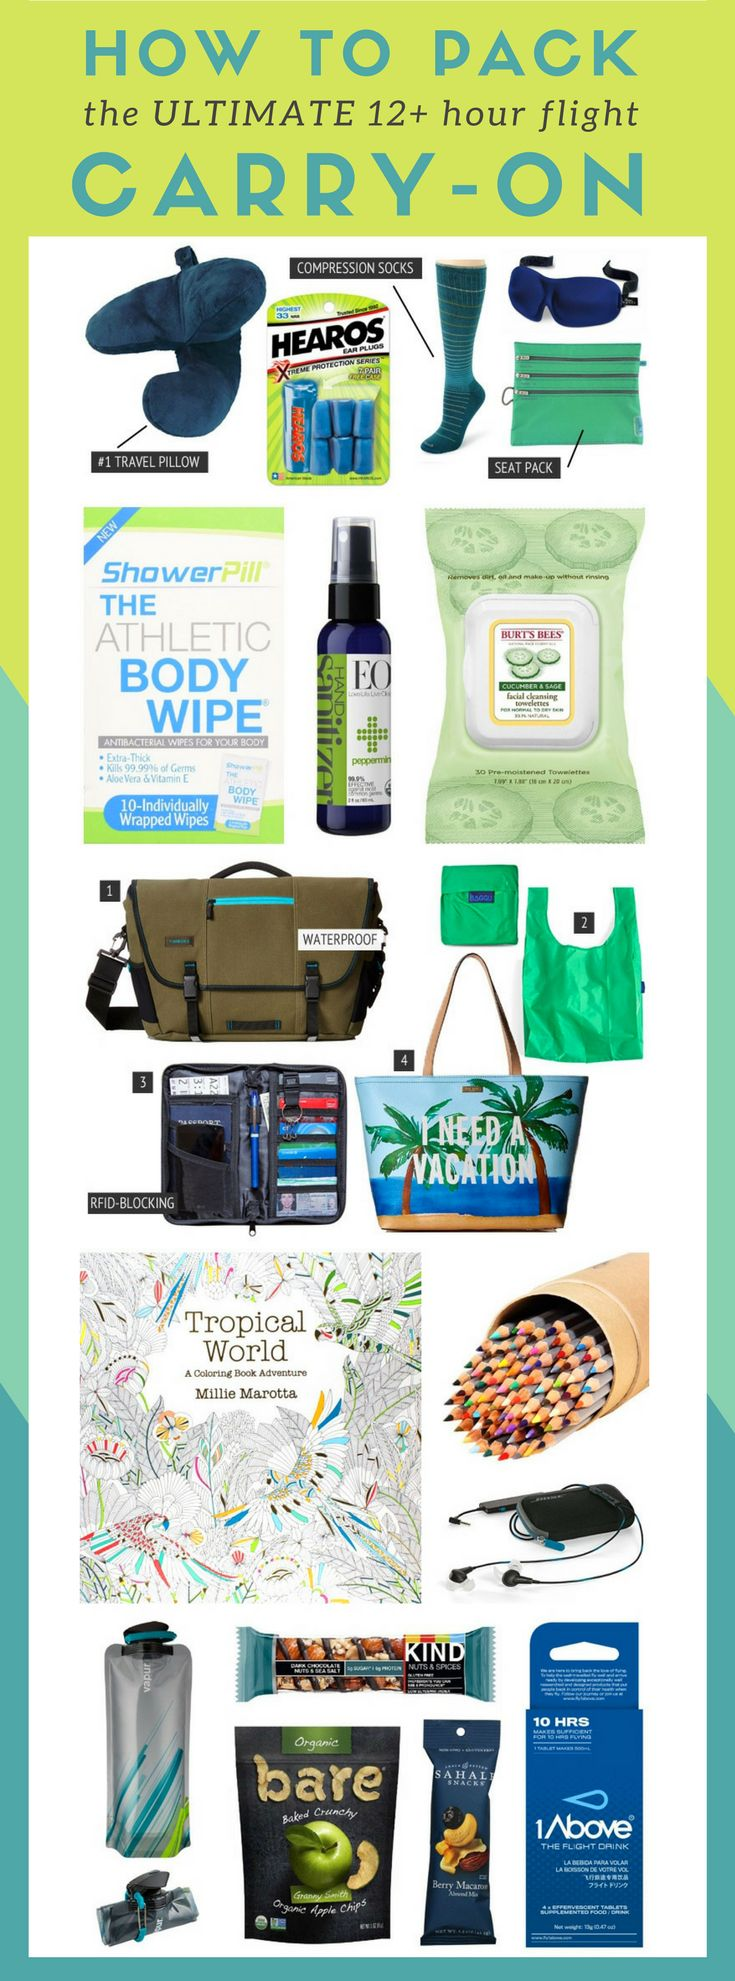 Thailand packing: Packing carry-on for Thailand: How to pack the ultimate carry-on for a long flight… click through to read more: http://www.kohsamuisunset.com/packing/   Thailand packing ideas